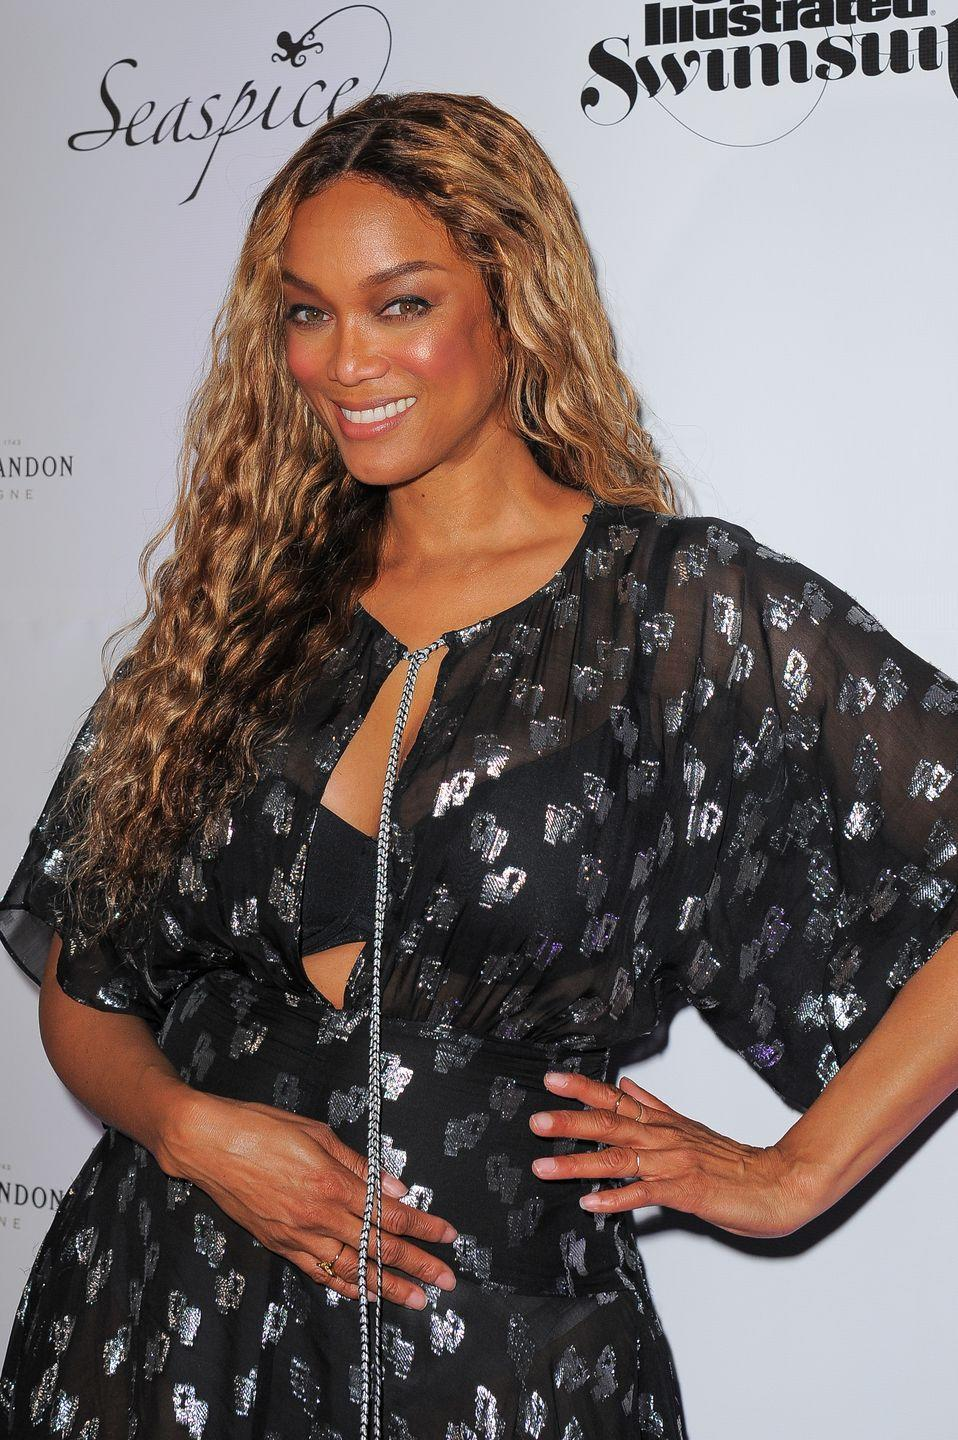 """<p>In 2011, <em>America's Next Top Model </em>creator Tyra Banks <a href=""""https://twitter.com/tyrabanks/status/125396423771566081?s=20"""" rel=""""nofollow noopener"""" target=""""_blank"""" data-ylk=""""slk:supported a fan on Twitter"""" class=""""link rapid-noclick-resp"""">supported a fan on Twitter</a> who said she wanted to be a model but had braces. Tyra responded with, """"I wore braces for two years and I became a model...TyTy.""""</p>"""